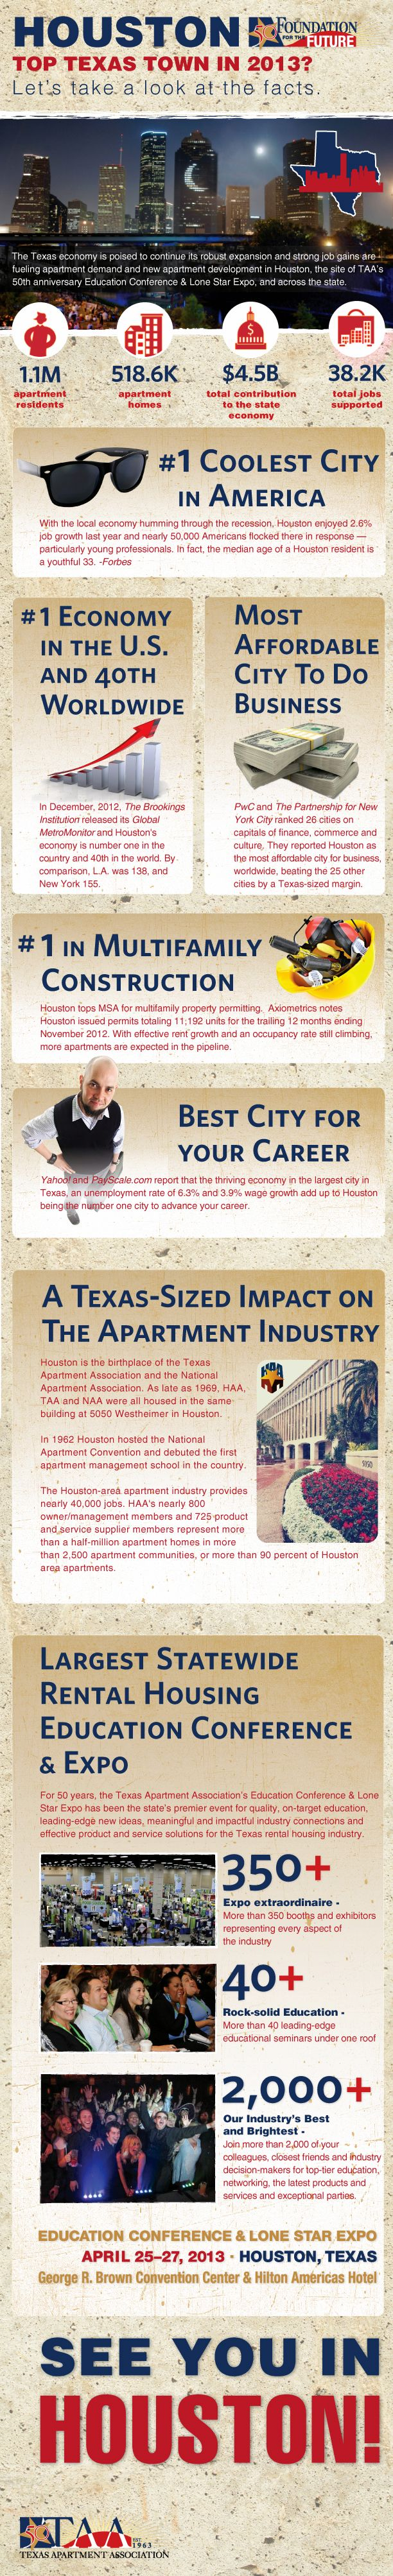 HOUSTON TOP TEXAS TOWN IN 2013 Lets Take A Look At The